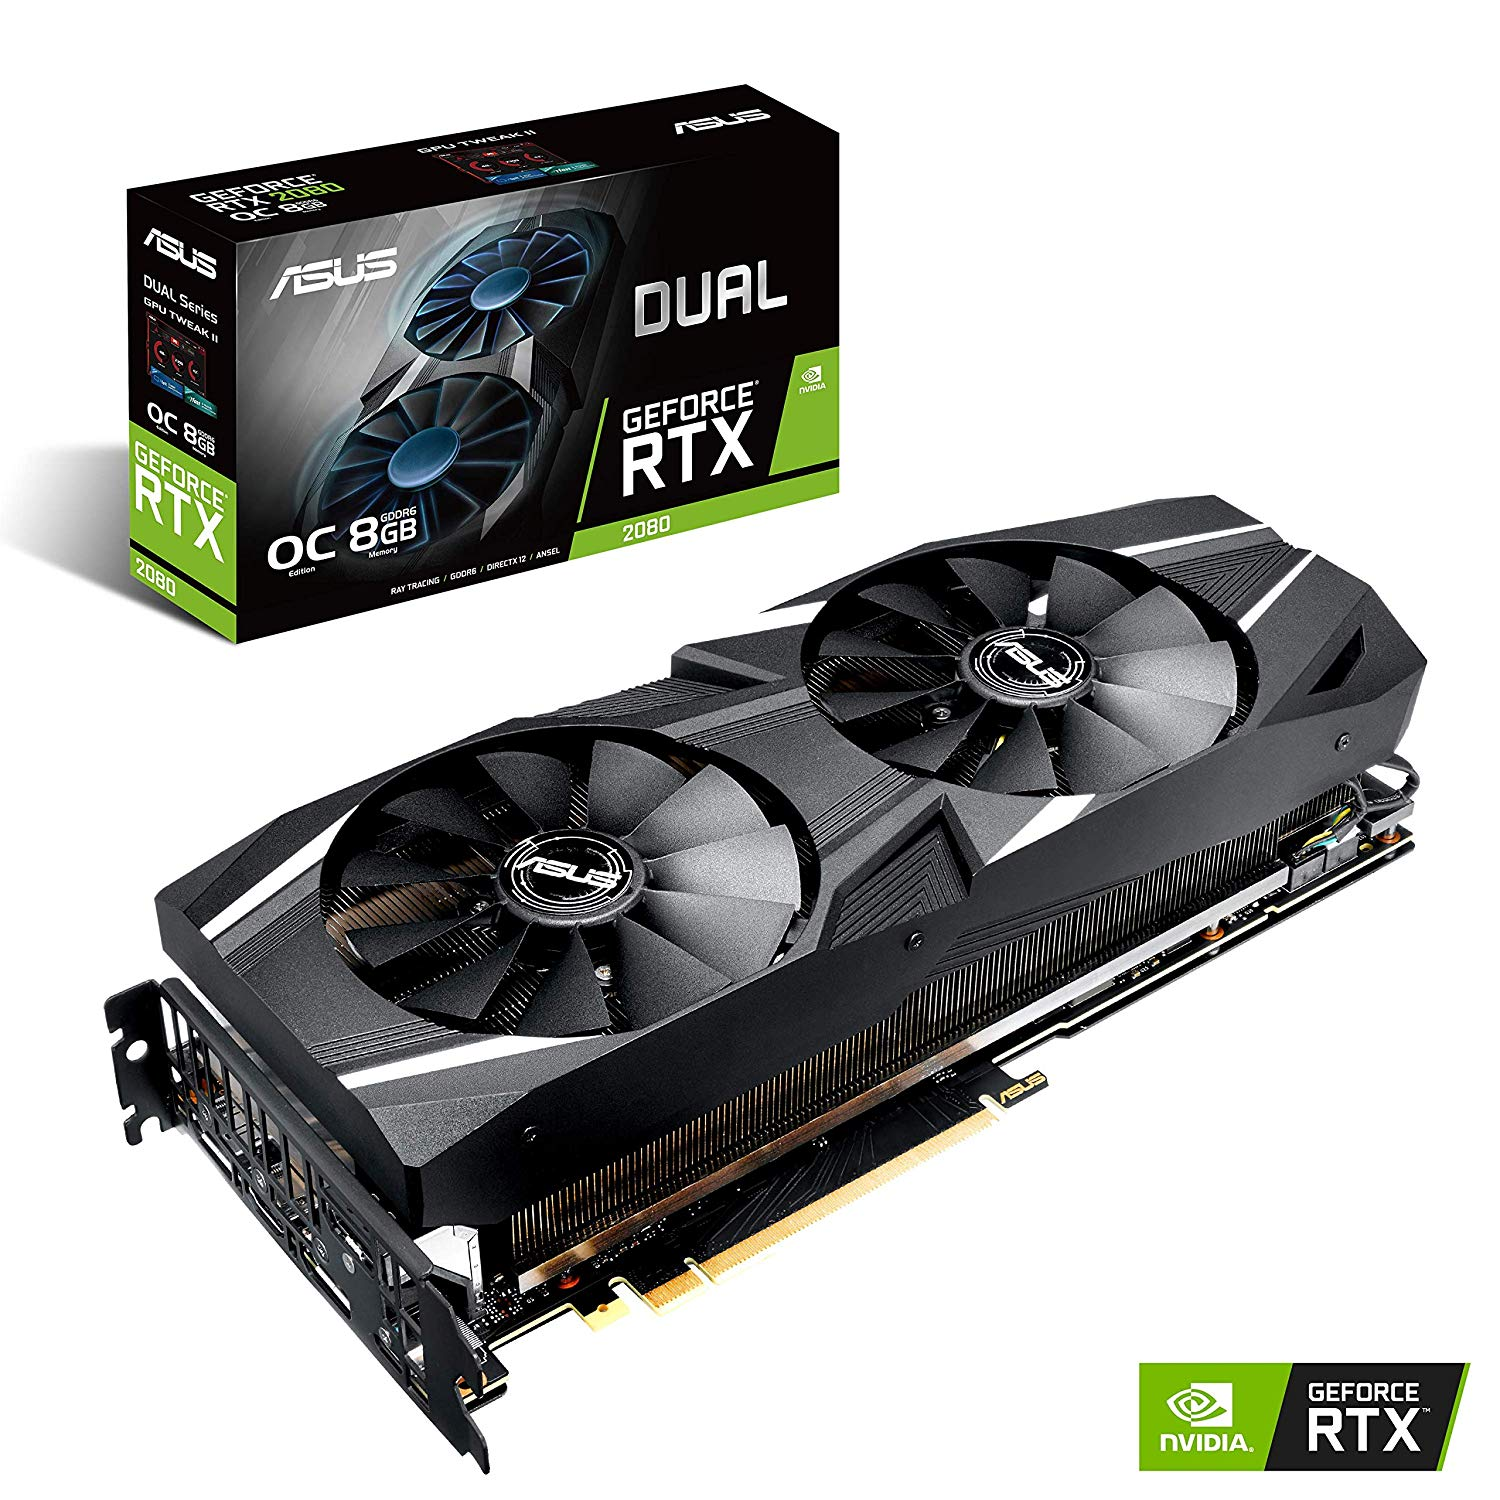 ASUS DUAL GEFORCE RTX 2080 8GB DDR6